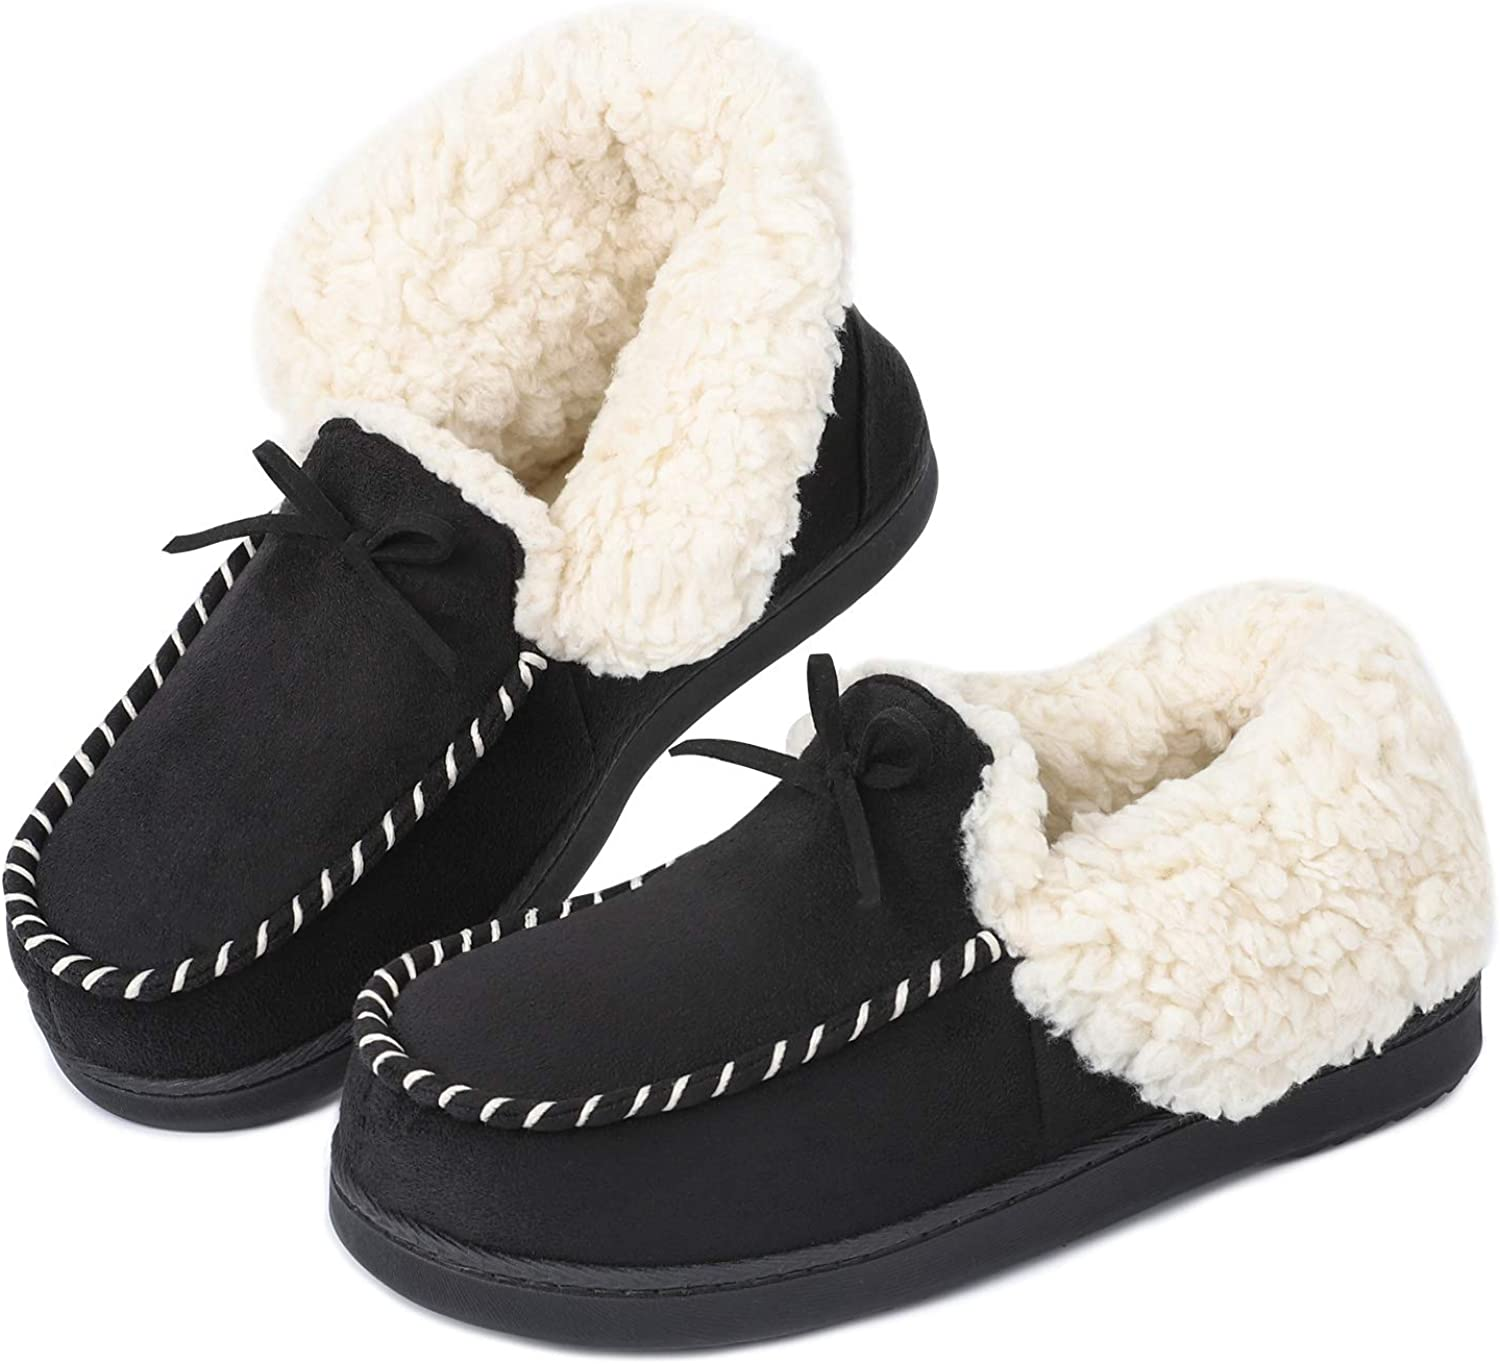 LongBay Women's Cozy Micro Suede Memory Foam Slippers with Sherpa Lining House Slippers for Indoor Or Outdoor